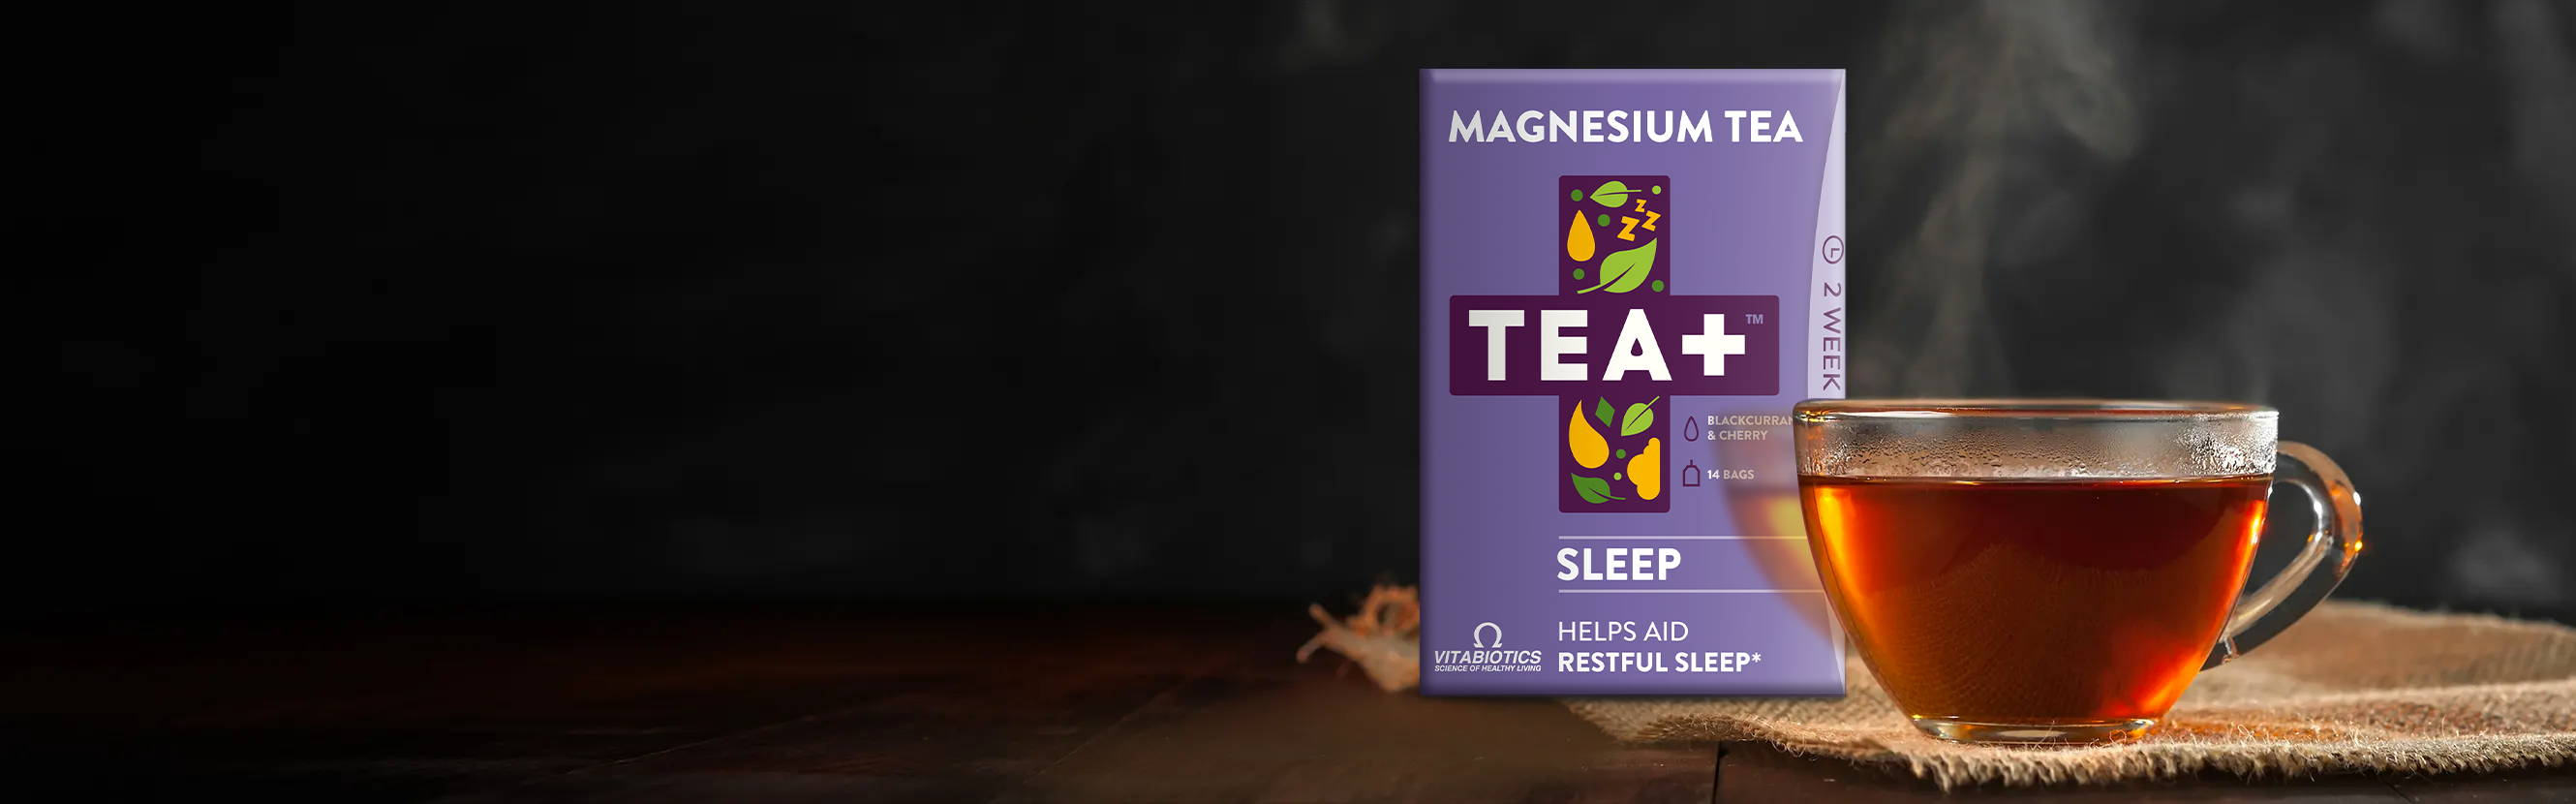 Getting into a regular routine before bed is a great way to prepare your body for sleeping. Sticking to the same activities every night can signal to your body that it is time for bed. Sipping a warm cup of TEA+ Sleep  every evening can help as part of a nightly routine.